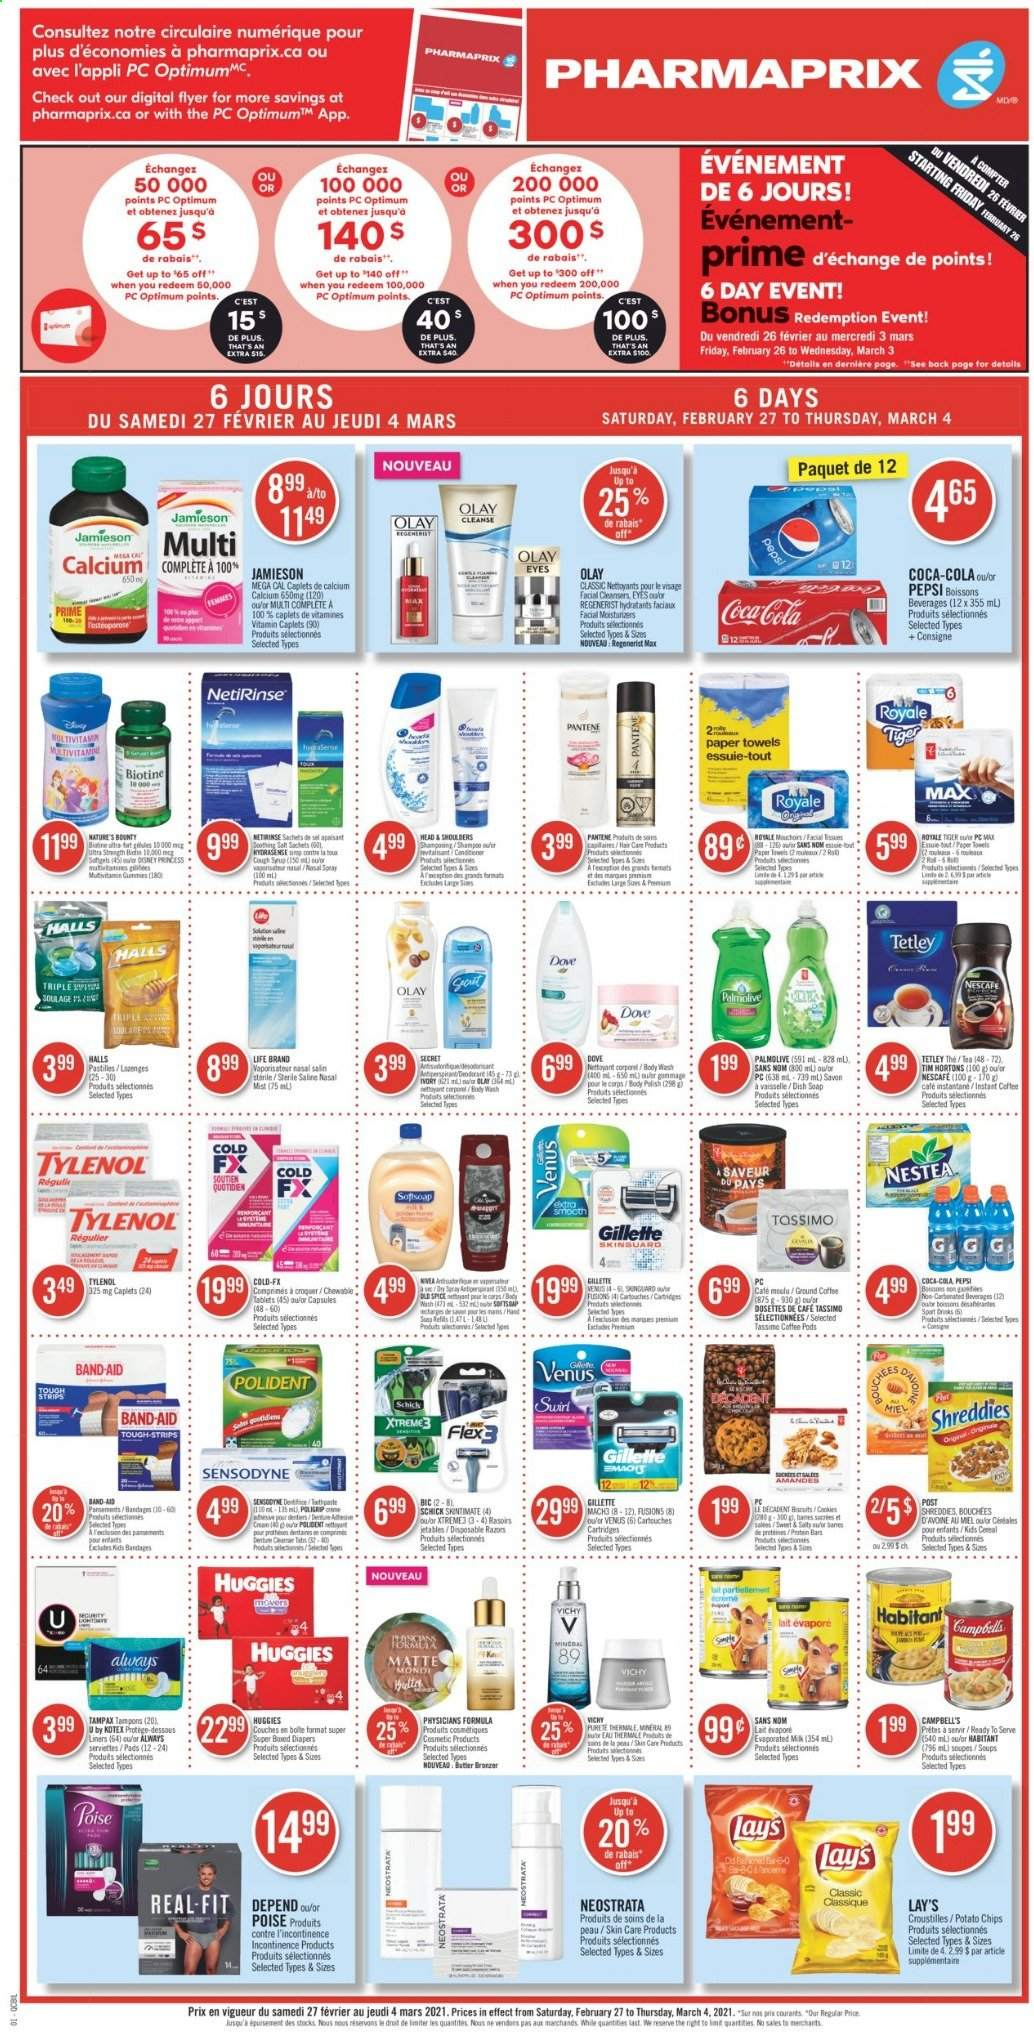 Pharmaprix Flyer - February 27, 2021 - March 04, 2021 - Sales products - band-aid. Page 1.